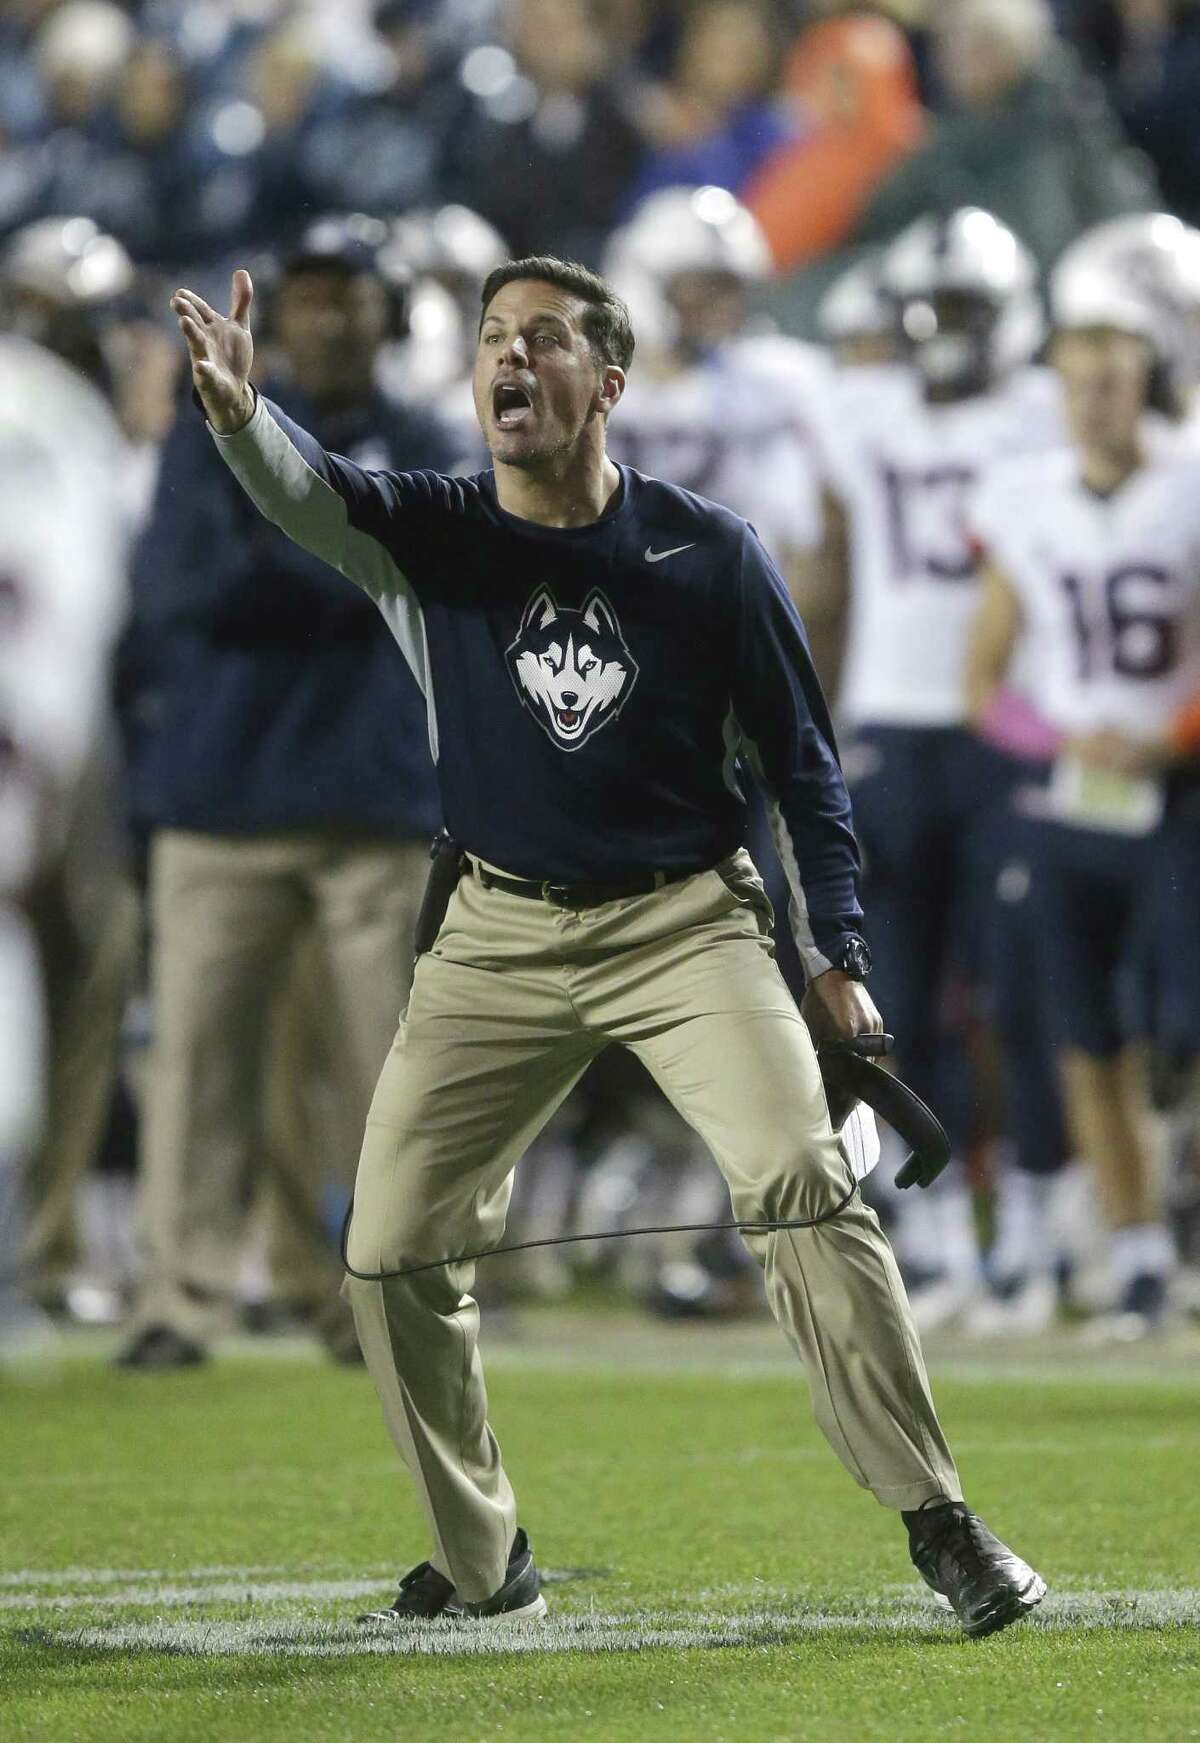 UConn head coach Bob Diaco reacts in the second half against BYU on Saturday.